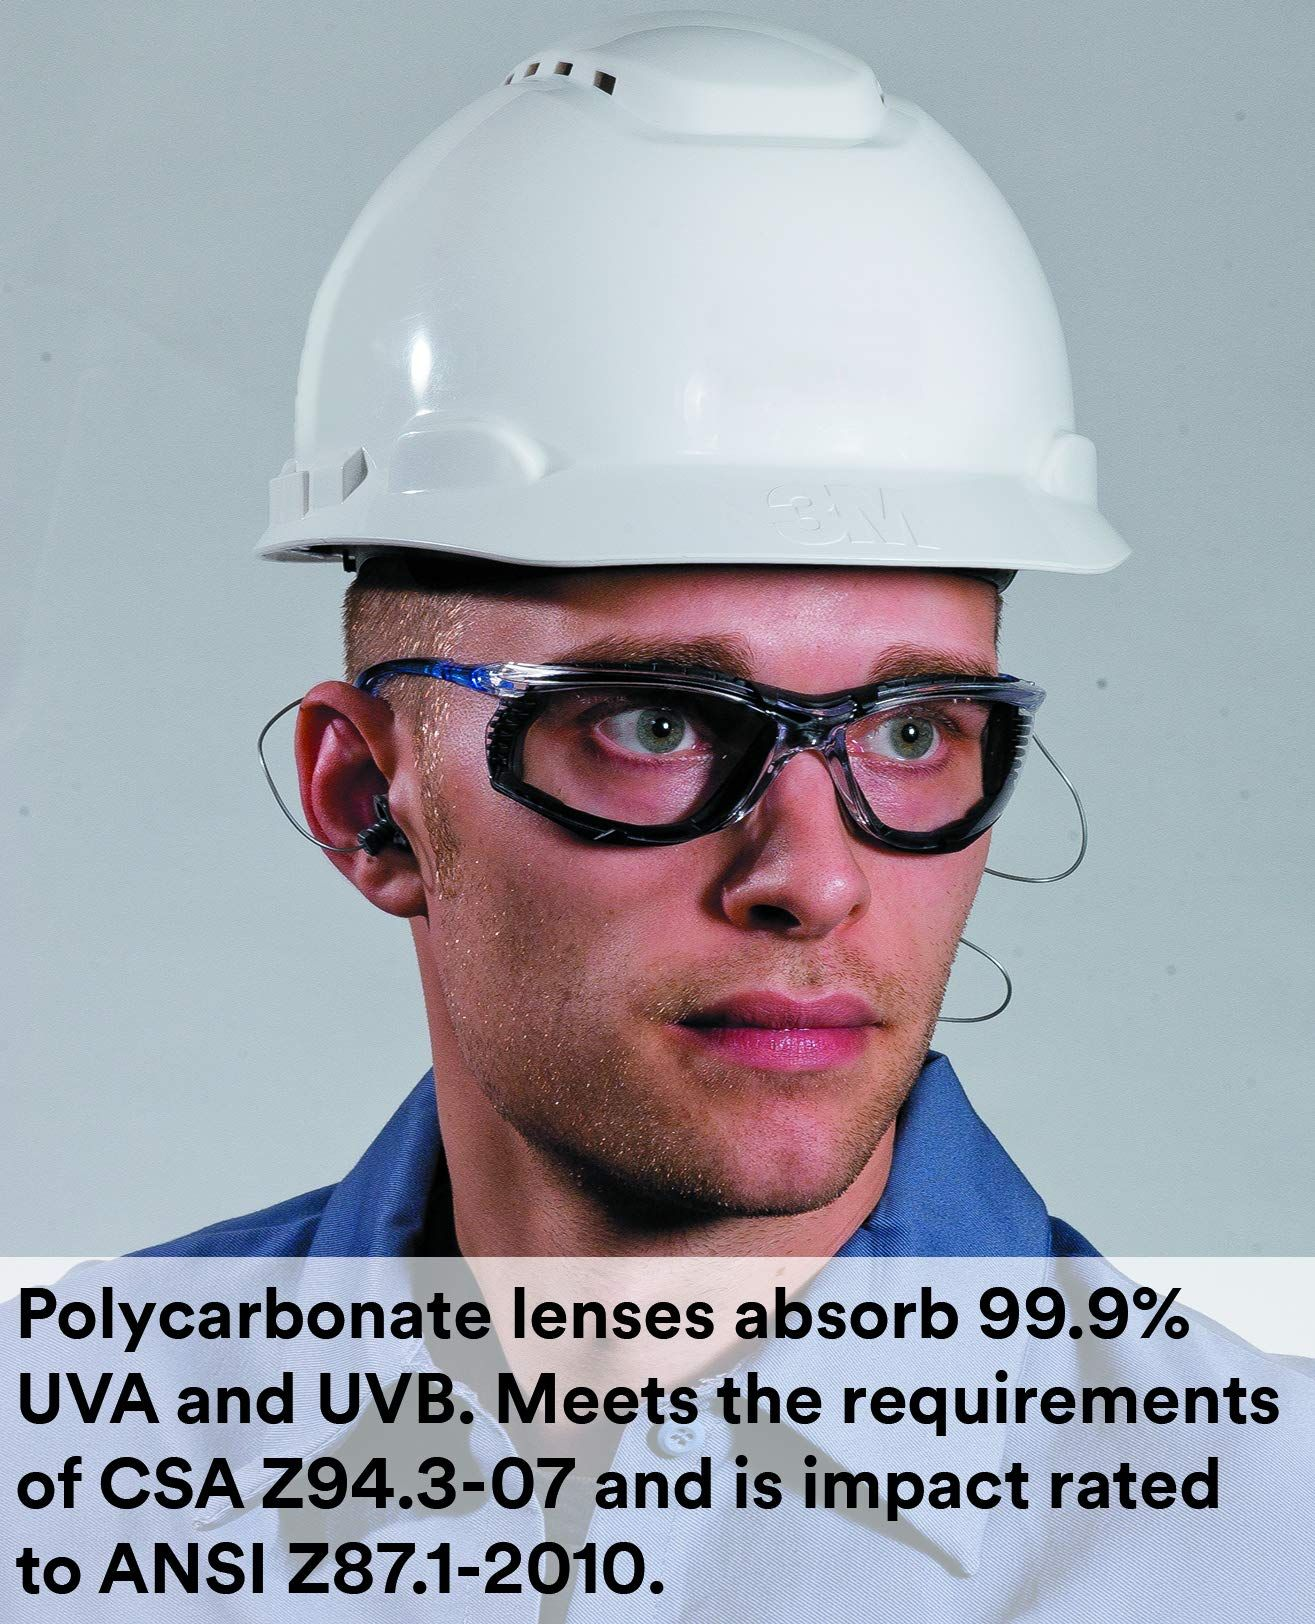 DUST DEFENSE Foam gasket helps limit eye exposure to